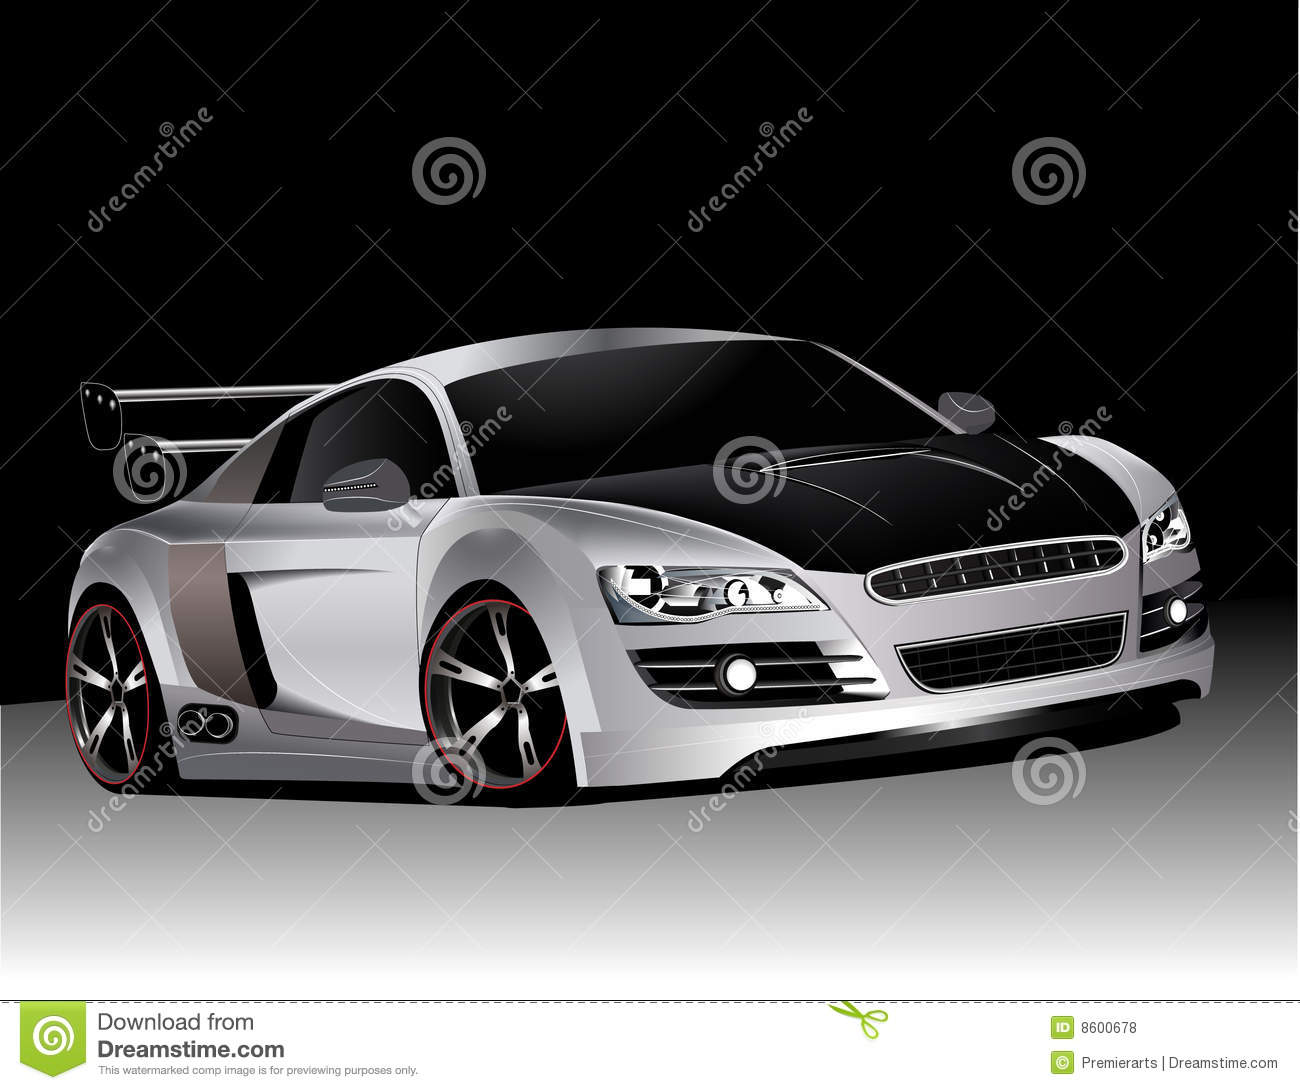 Hot Wheels Tyres >> Customized audi r8 stock vector. Image of hood, detailed - 8600678